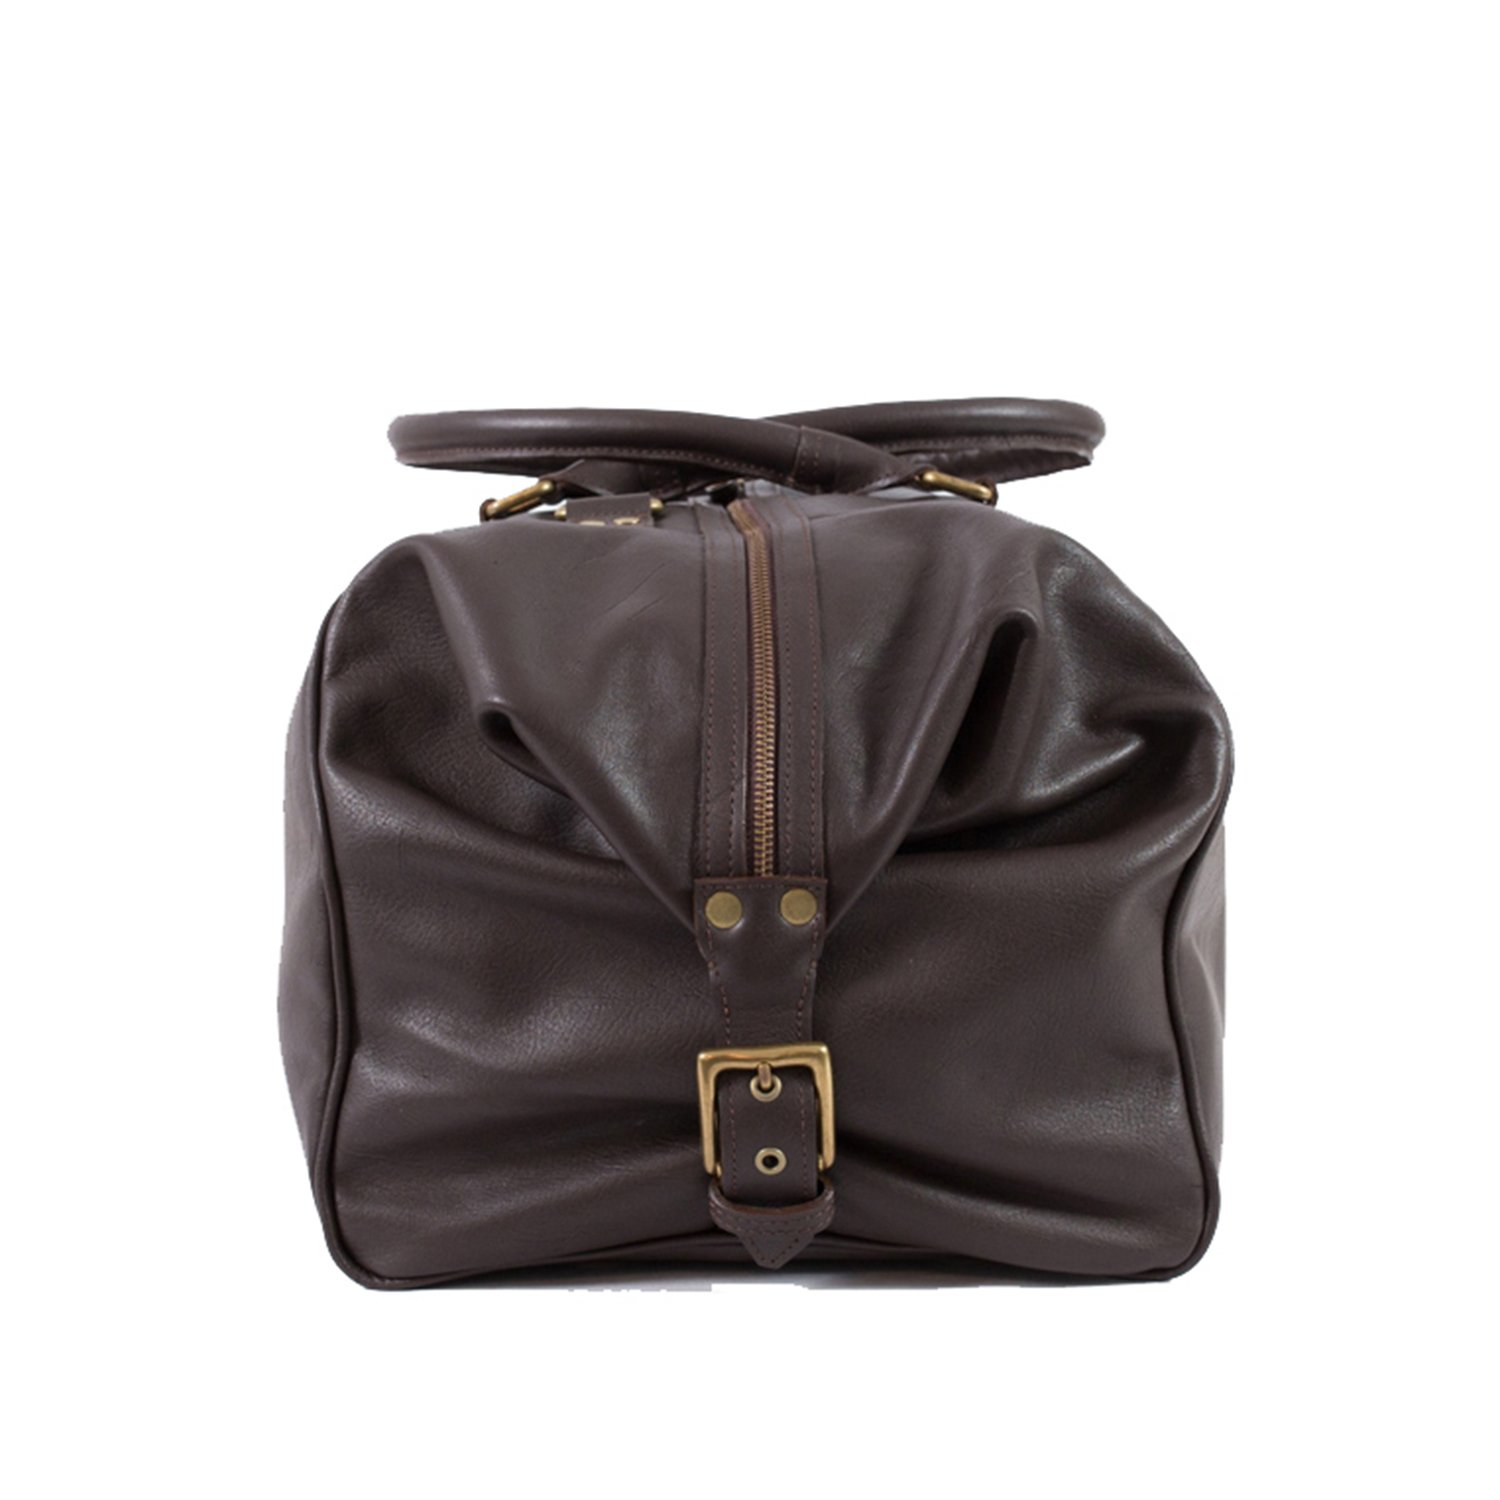 Pampa Puro  Large Chocolate Brown Handmade Leather Duffle Bag   ROQUE 3fd7138613